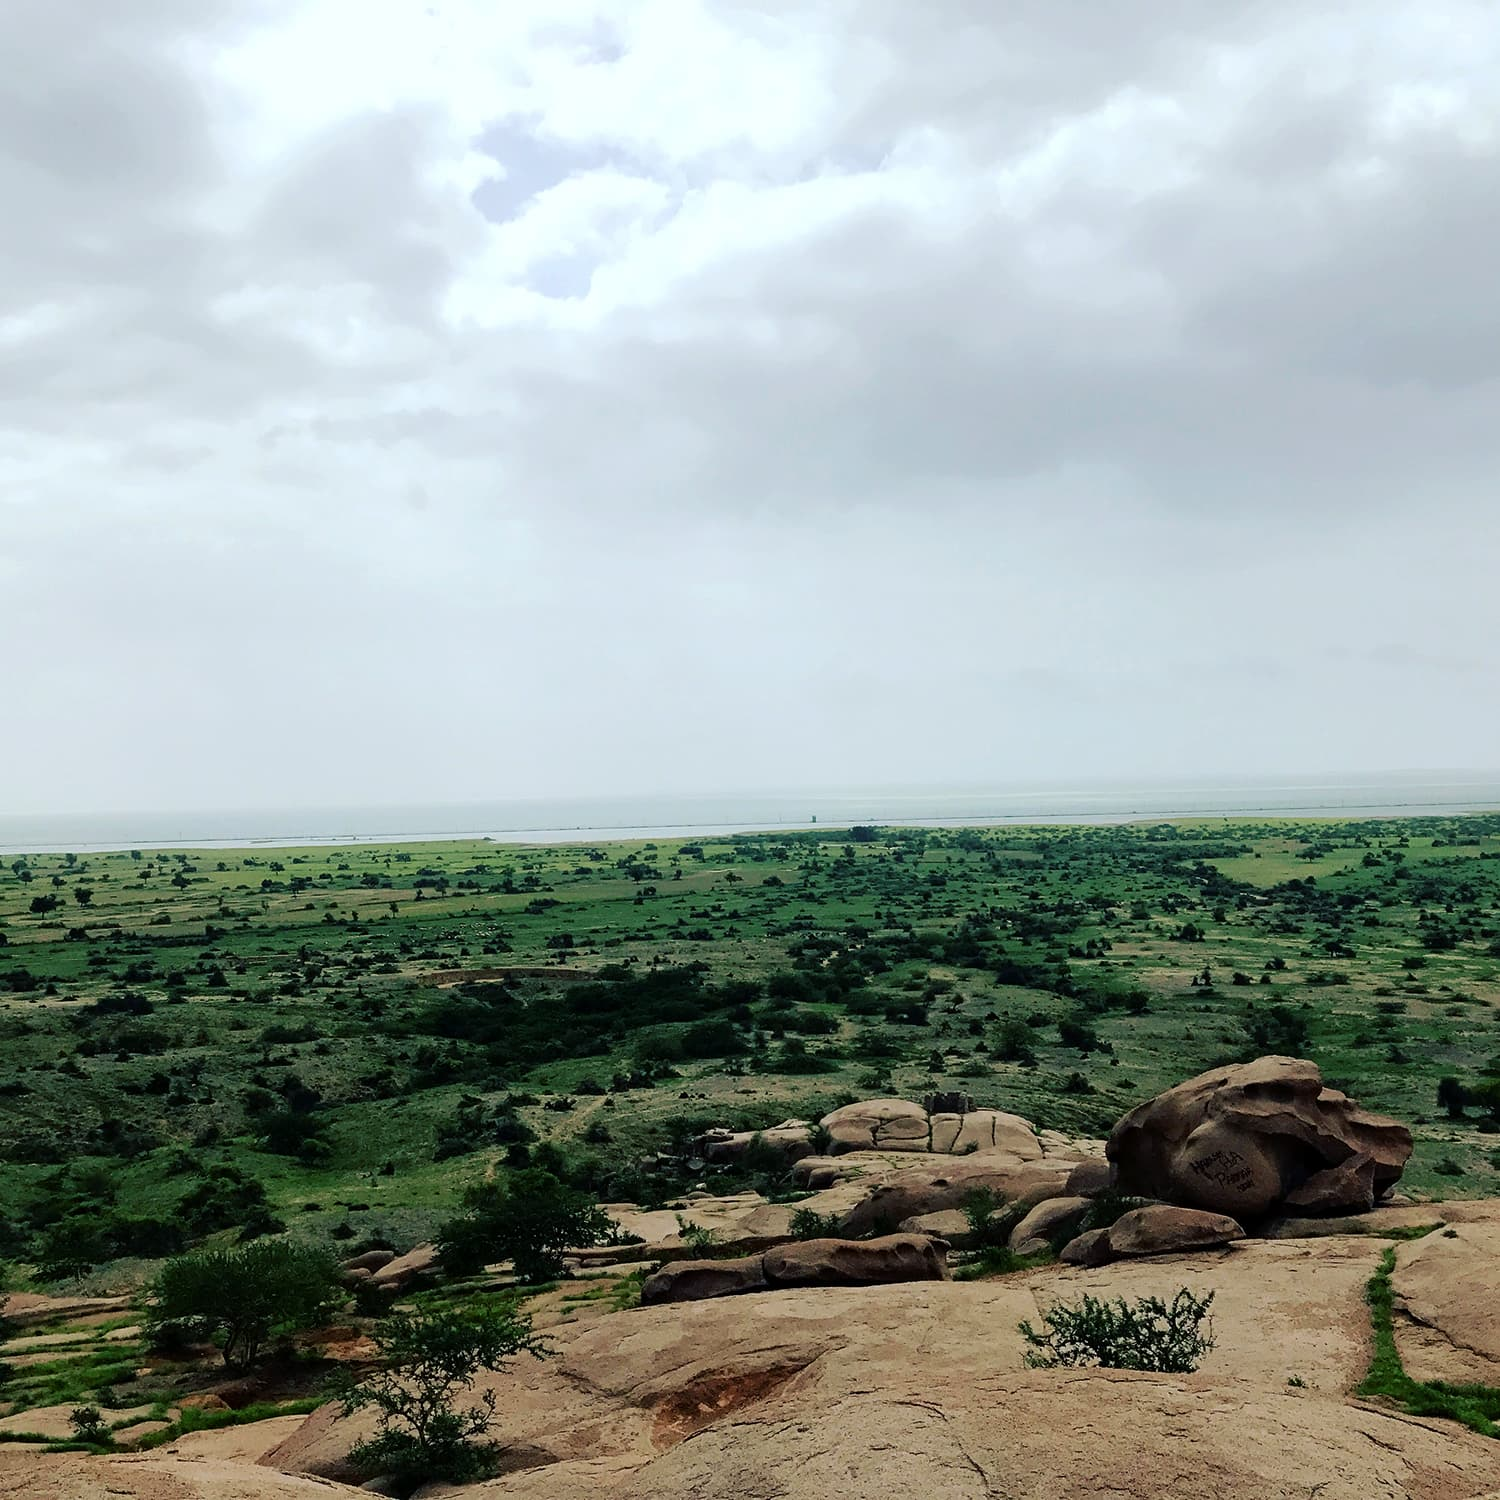 A 180-degree-view of India from the lookout at Kali temple. Churio sits very close to the Gujarat/Rajasthan state border. Jaipur and Jodhpur are two major Rajasthani cities, about the same distance from Churio as is Karachi. Perhaps one day Nagarparkar can be a stopping point for cross-border tourism.